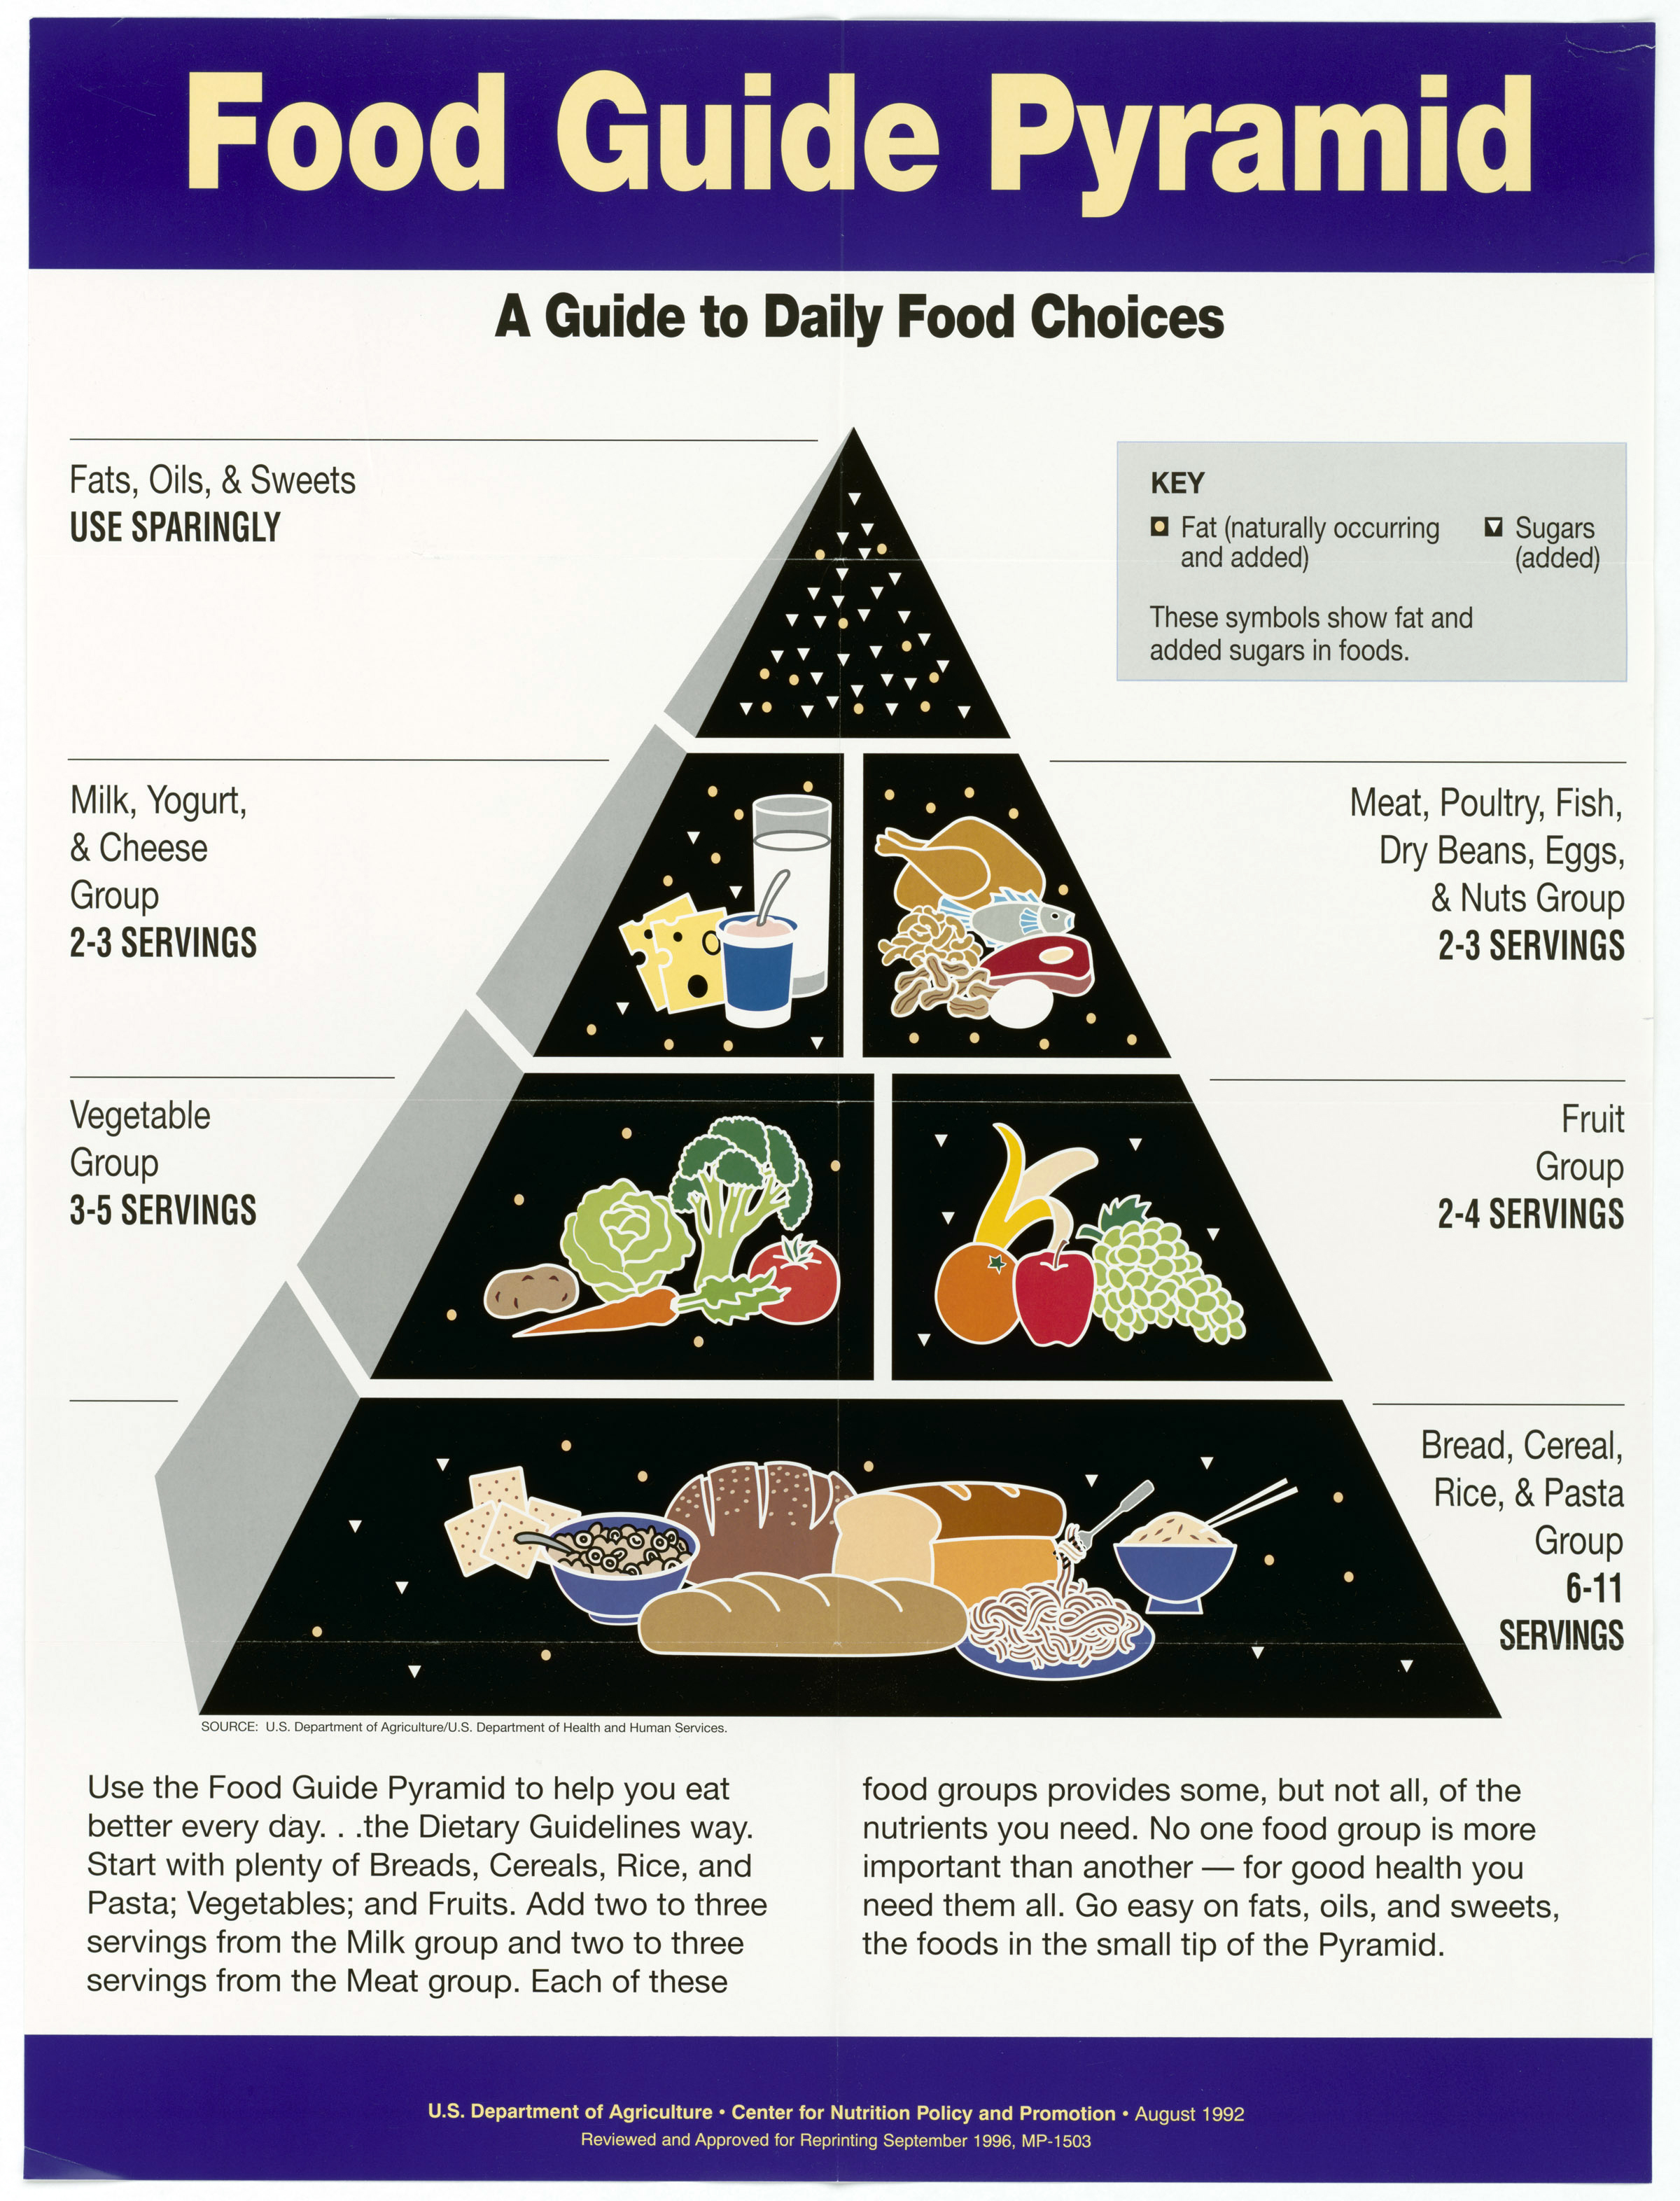 File Food Guide Pyramid A Guide To Daily Food Choices